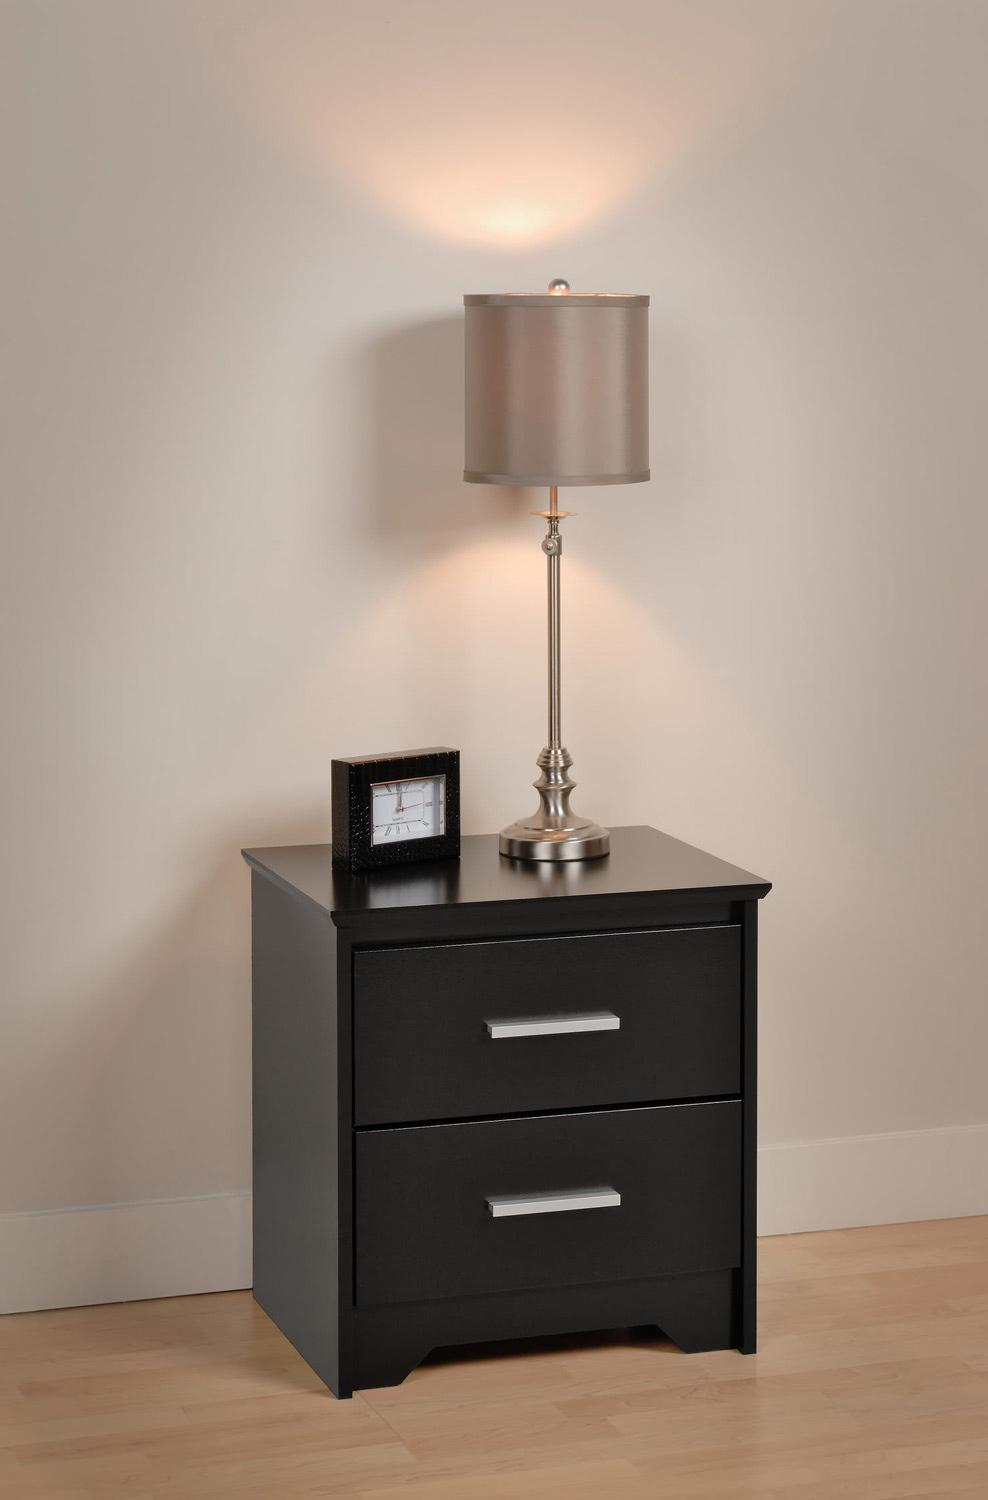 Prepac Coal Harbor 2 Drawer Night Stand - Black